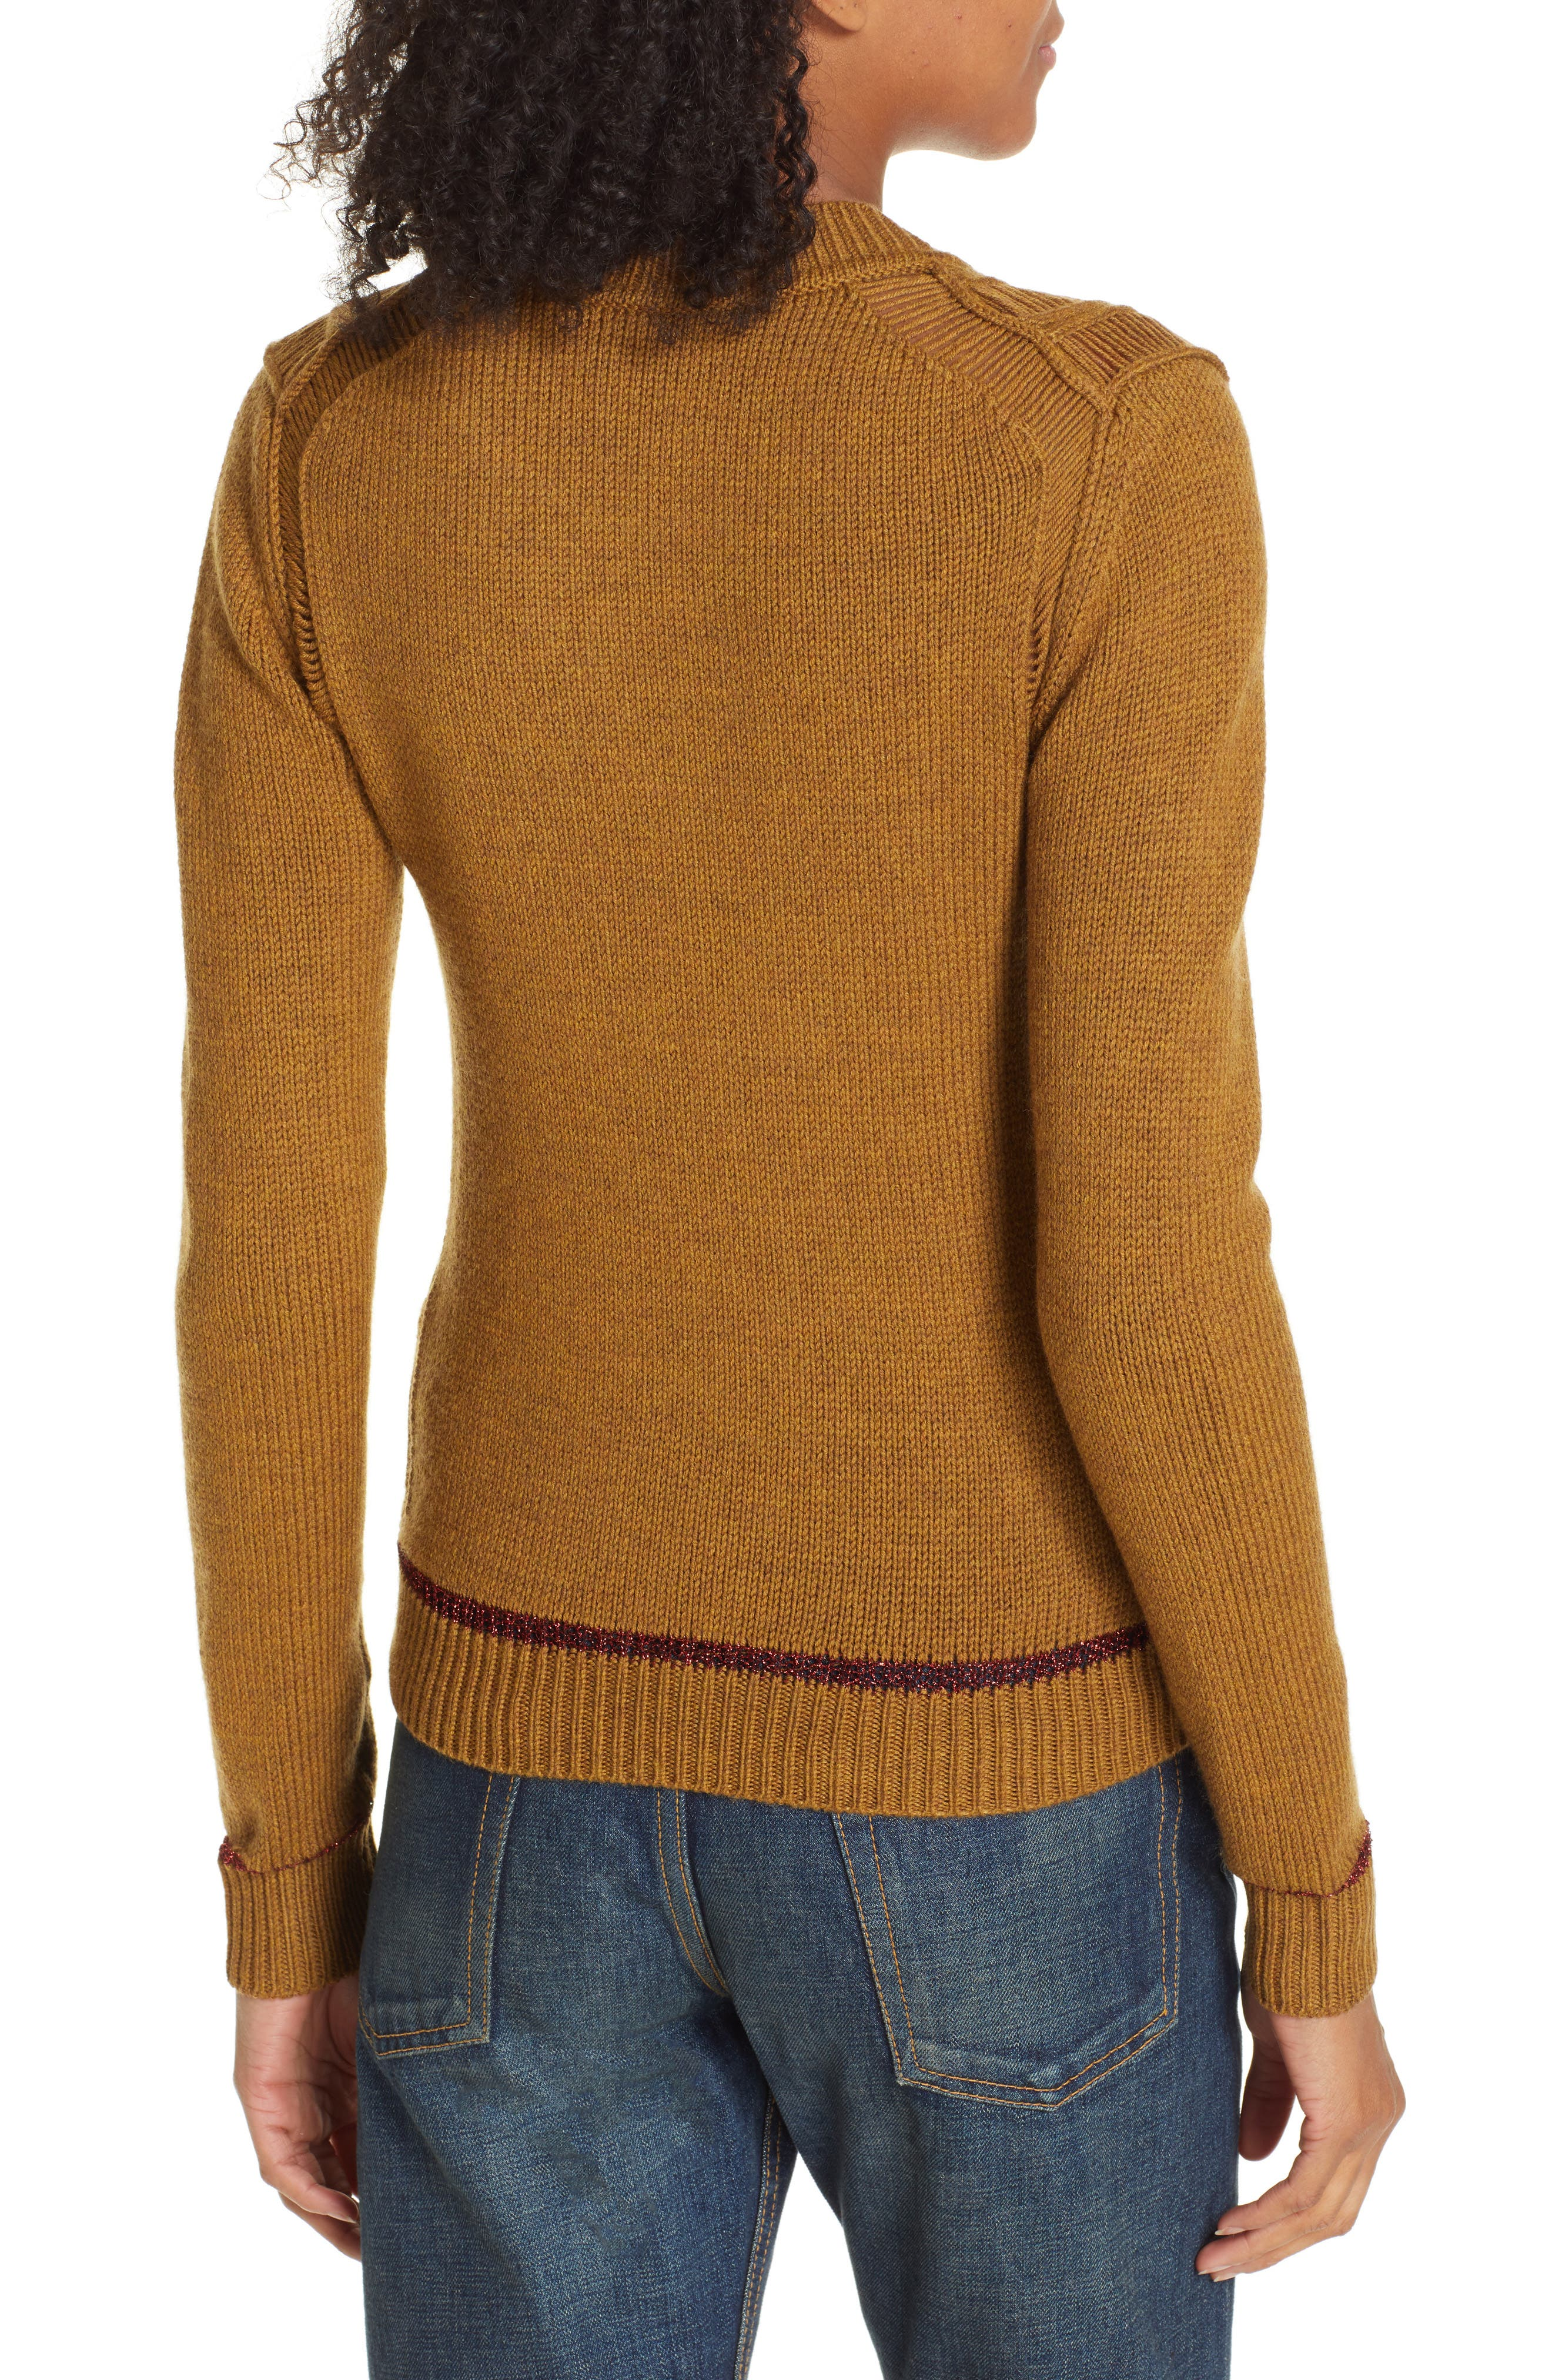 8eda67870c136 See by Chloé Clothing for Women